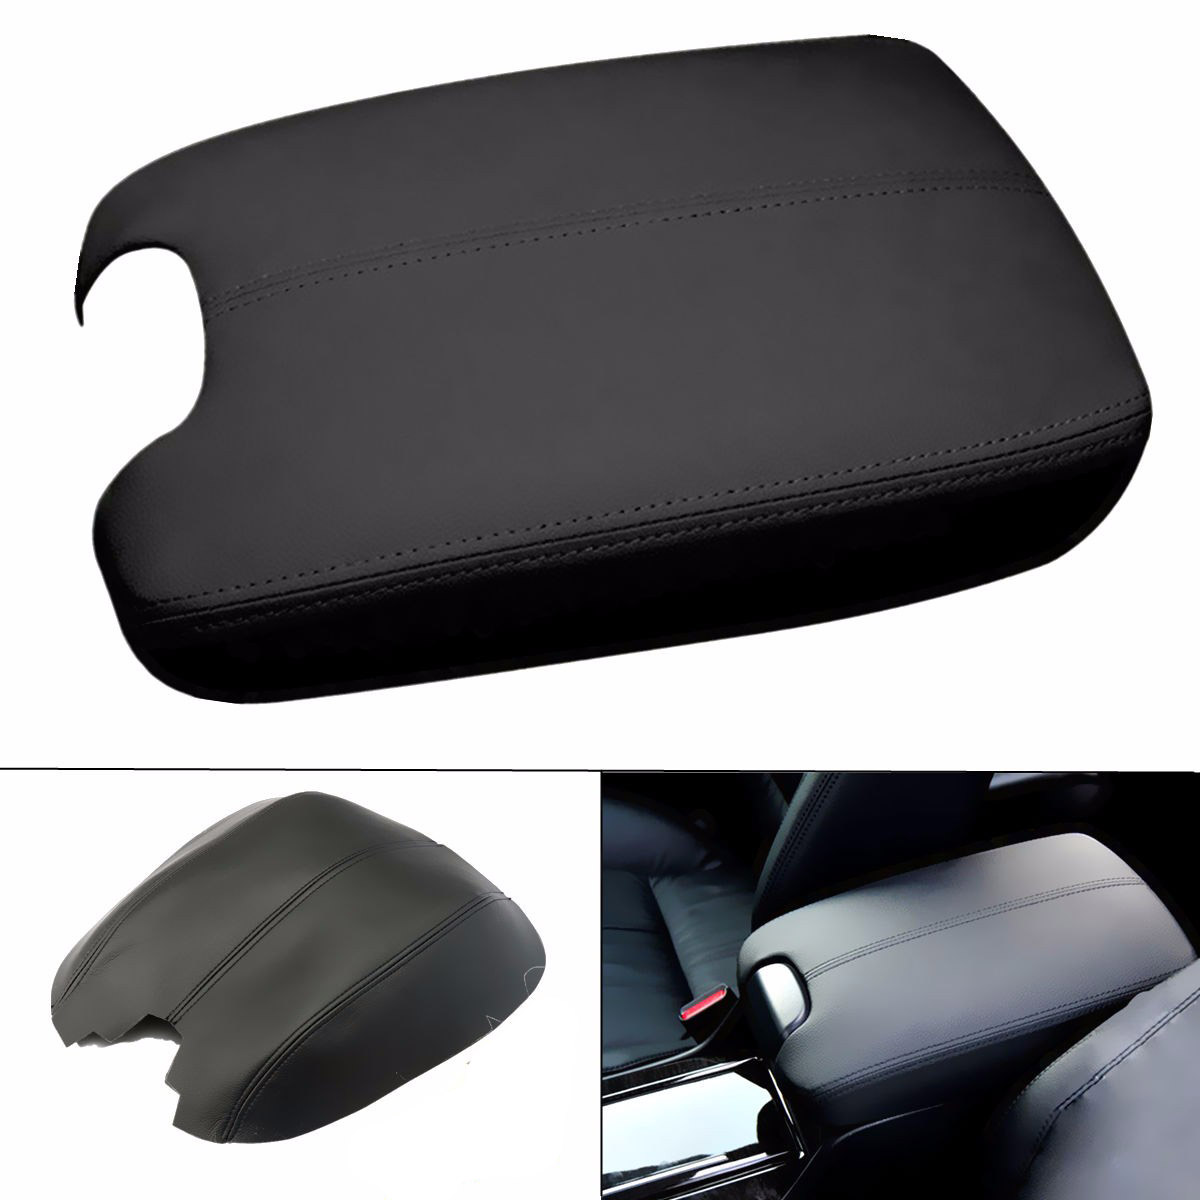 New Black Leather Armrest Center Box Console Lid Cover with Brush Scraper For Honda /Accord 2008 2009 2010 2011 2012